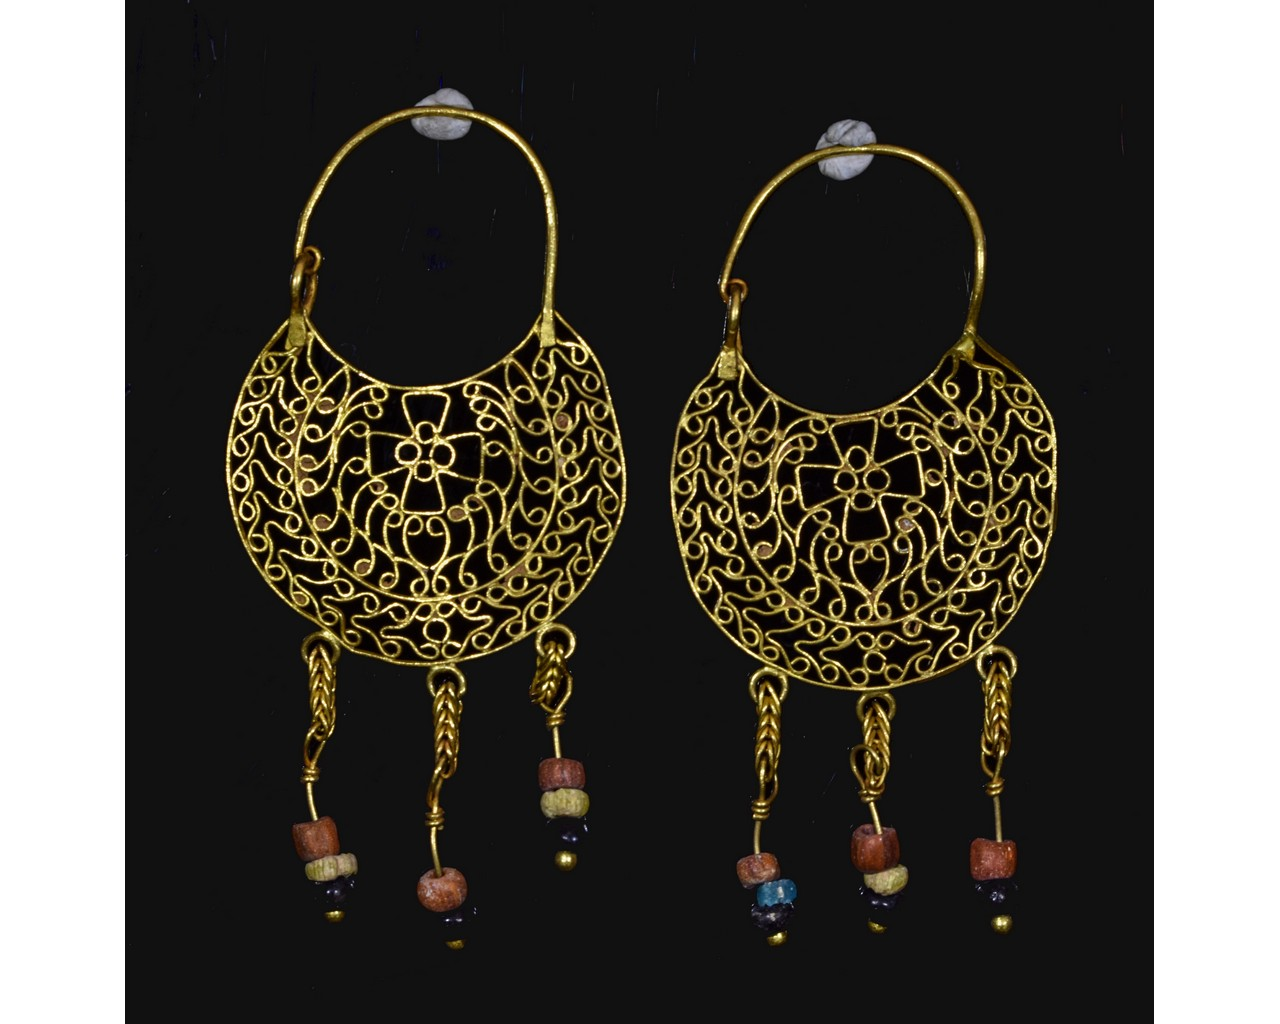 Lot 19 - BYZANTINE GOLD EARRINGS WITH CROSSES AND BEADS